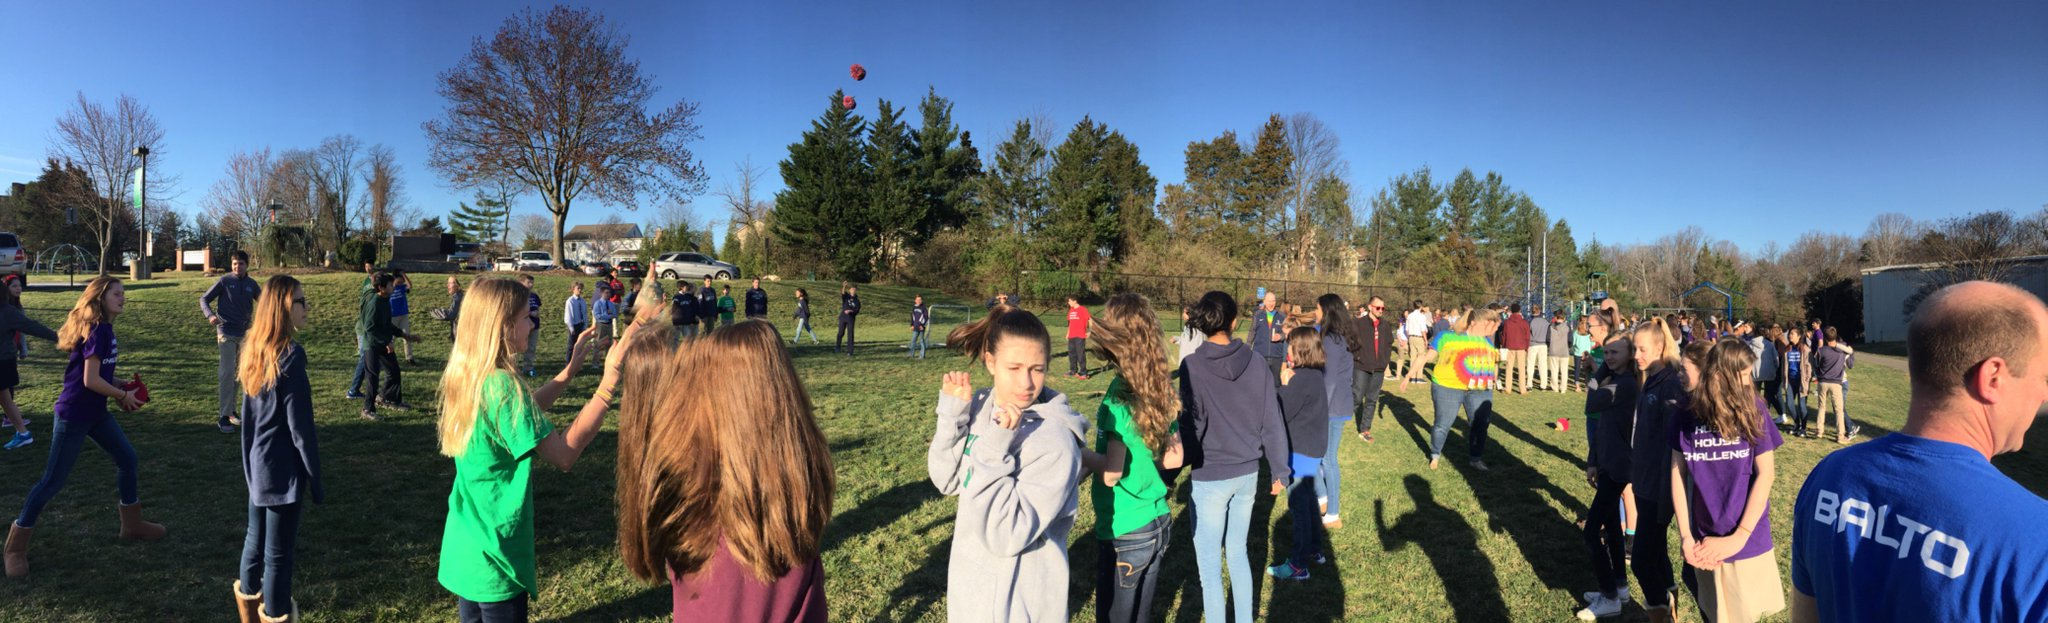 Sometimes you need to start the day with a giant game of speed ball! #myflinthill https://t.co/94BnITOTRt